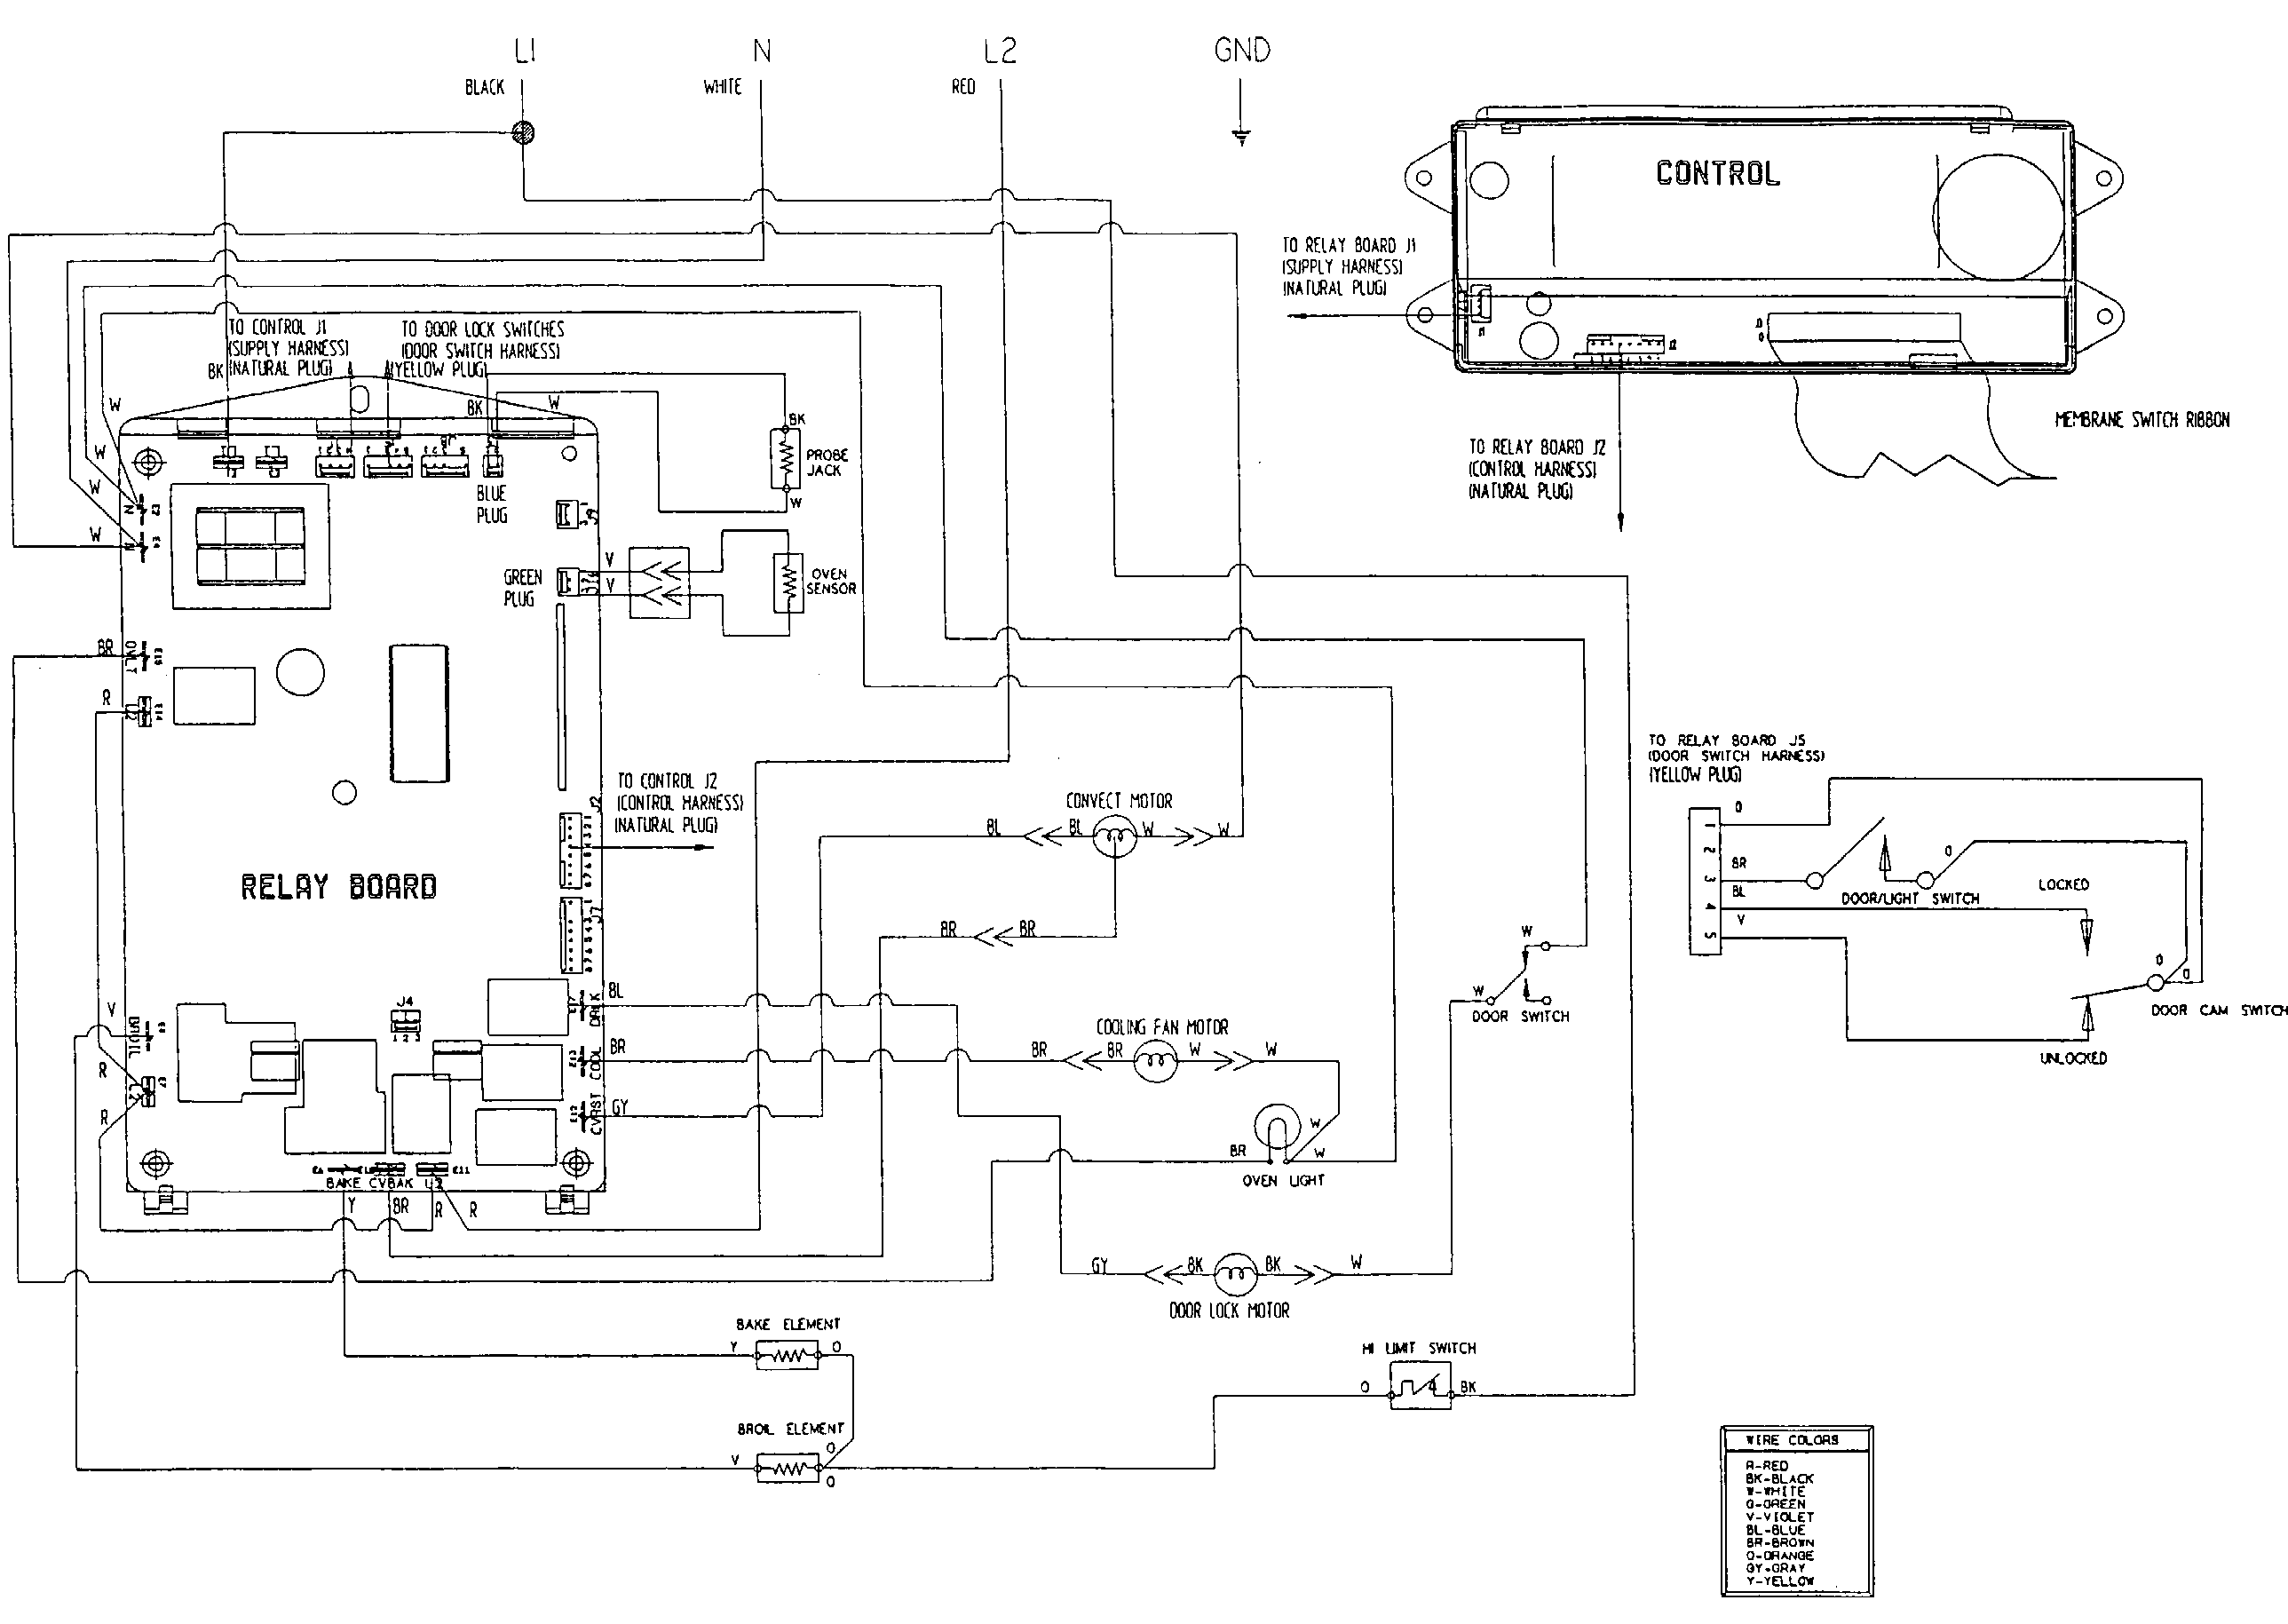 ge stove wiring diagram broiler unit jenn-air w30400bc electric wall oven timer - stove clocks ...